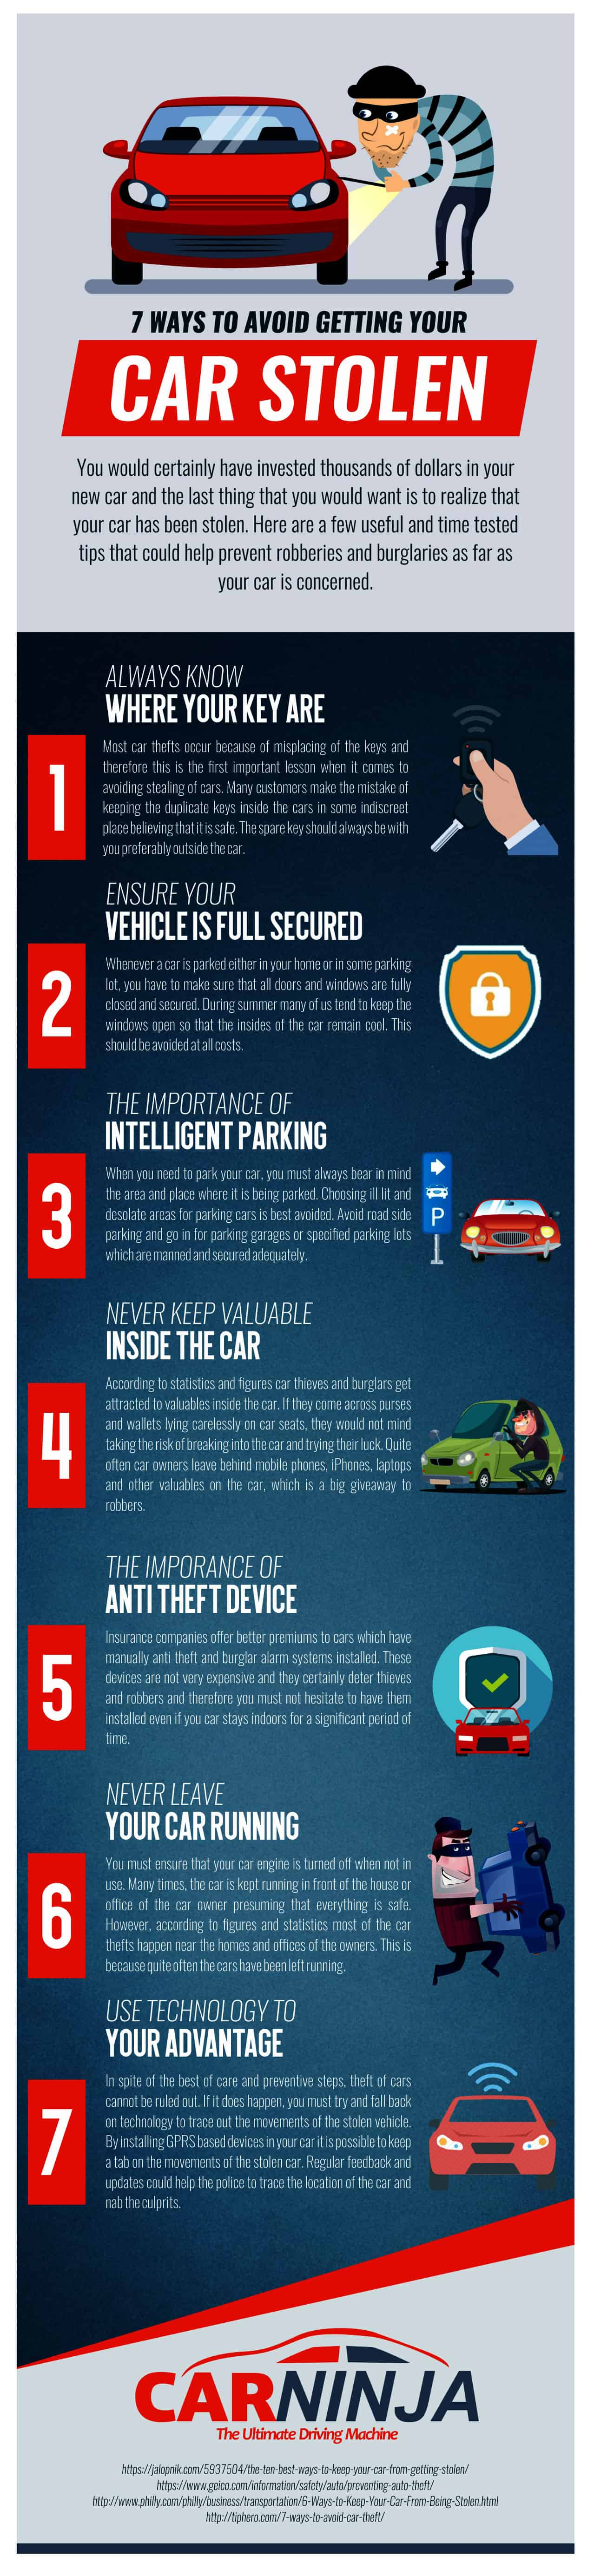 7 Ways To Avoid Getting Your Car Stolen Infographic